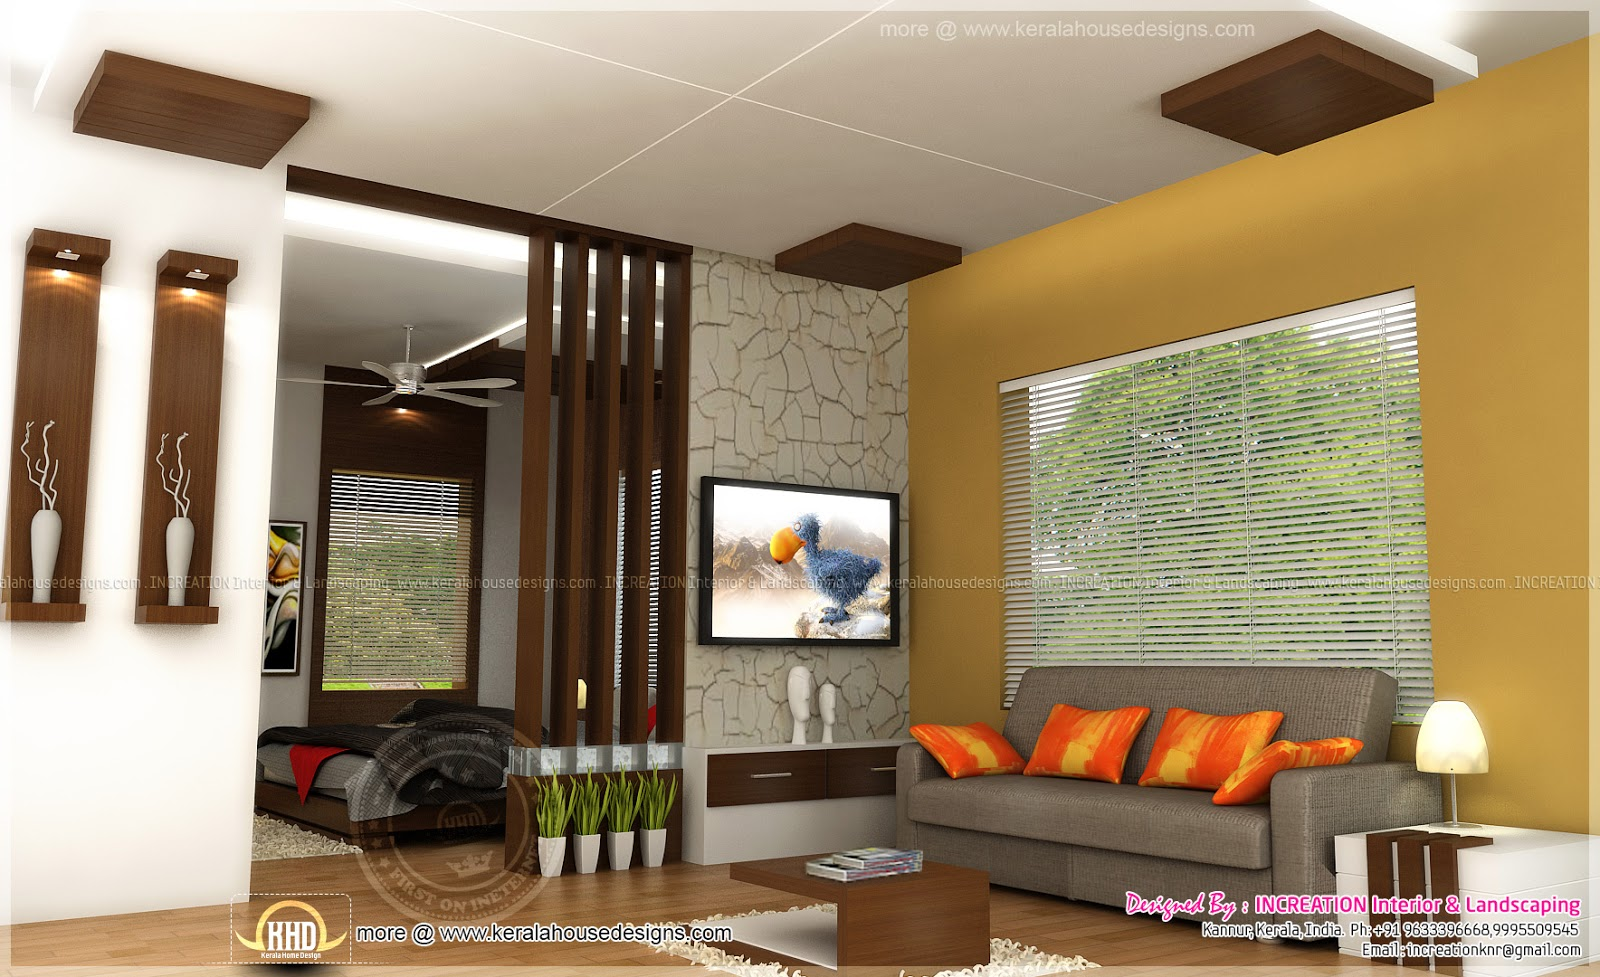 interior designs from kannur kerala kerala home design kerala interior design ideas from designing company thrissur